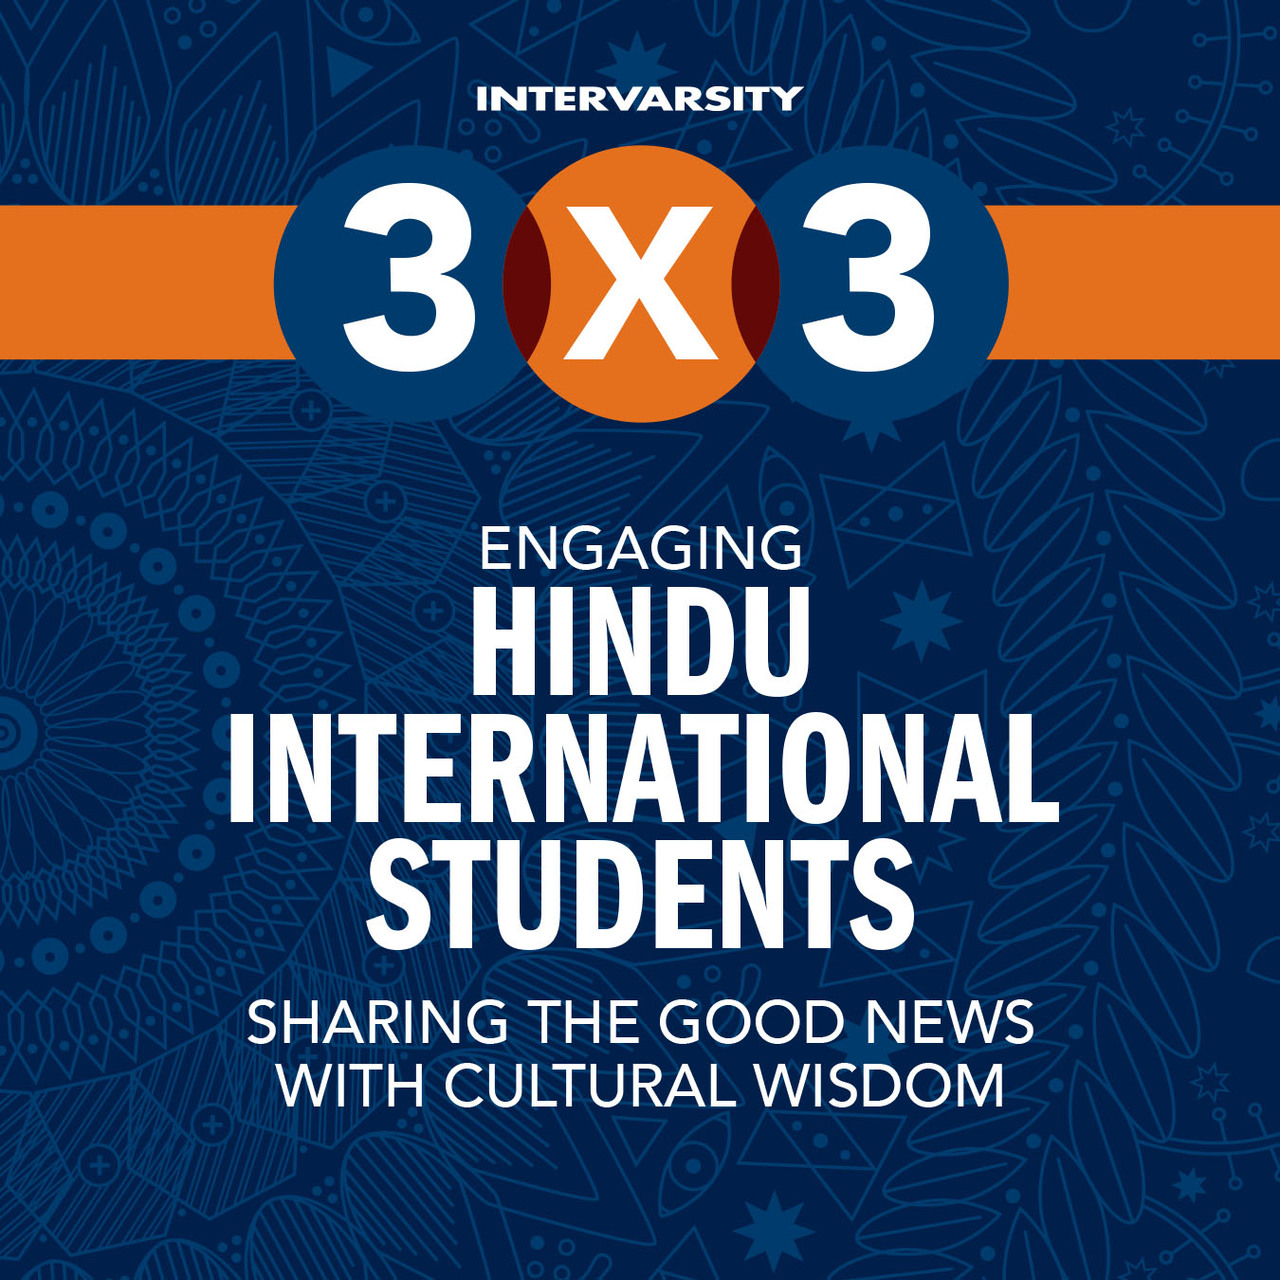 Engaging Hindu International Students 3x3 Quick Guide (bundle of 10)